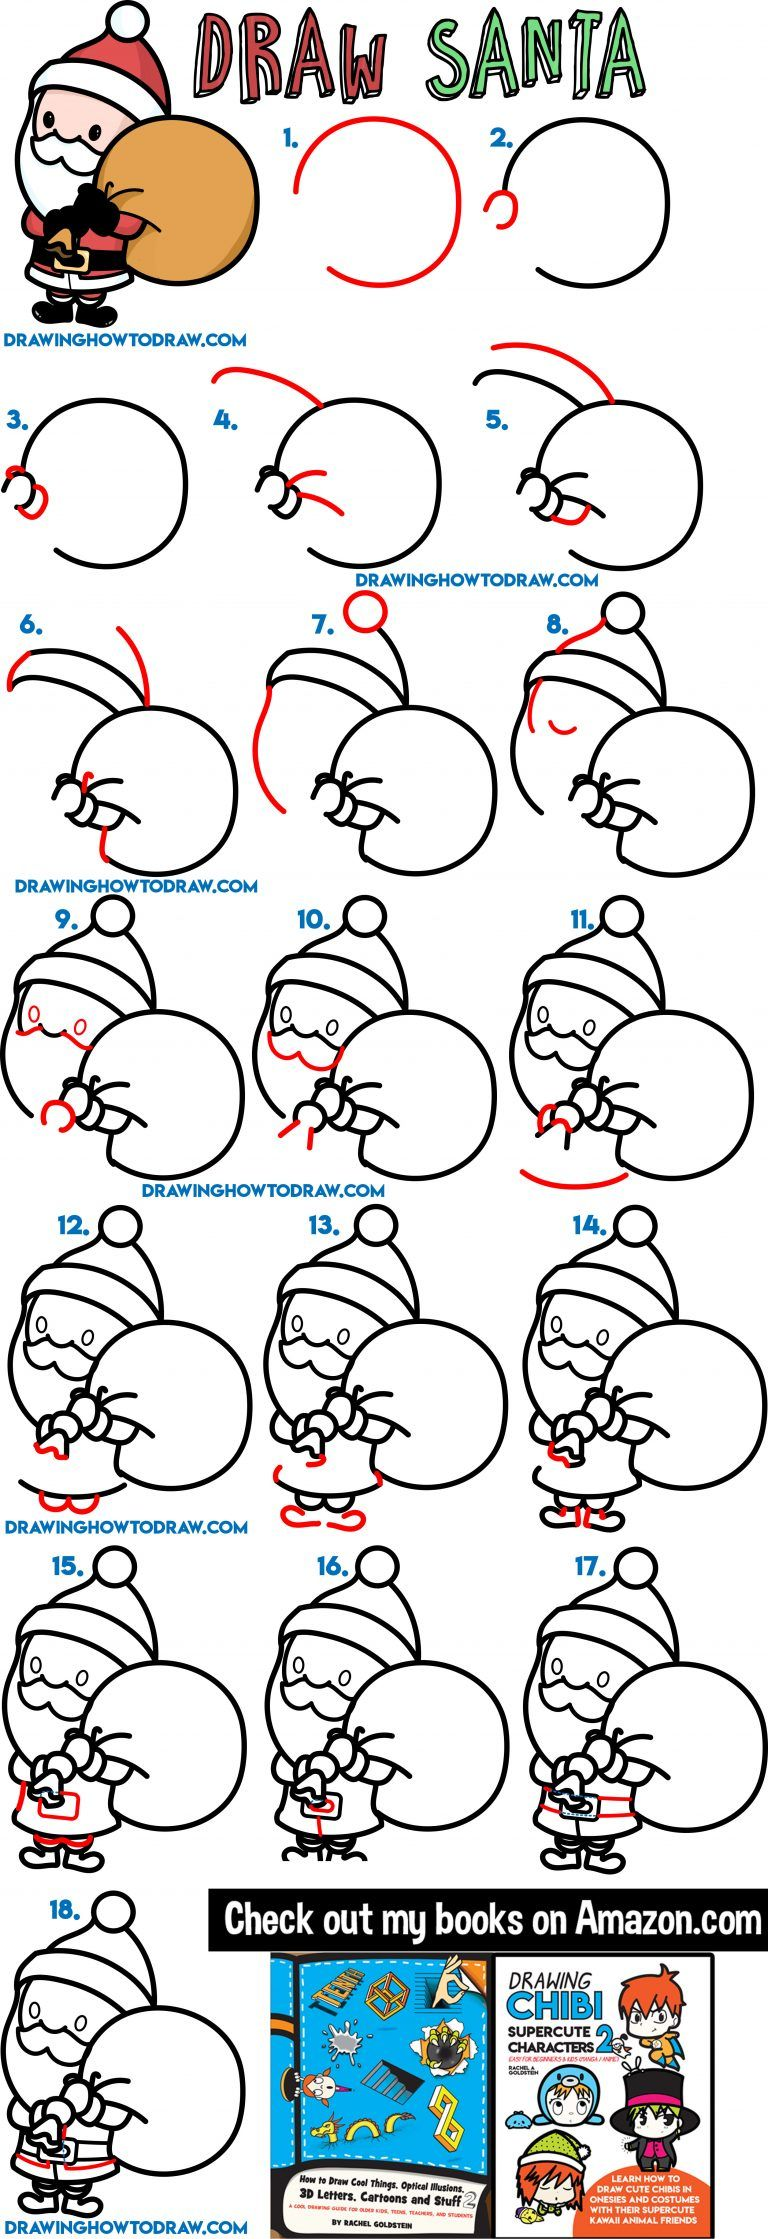 How to Draw a Cute Cartoon Santa Claus Easy Steps Tutorial